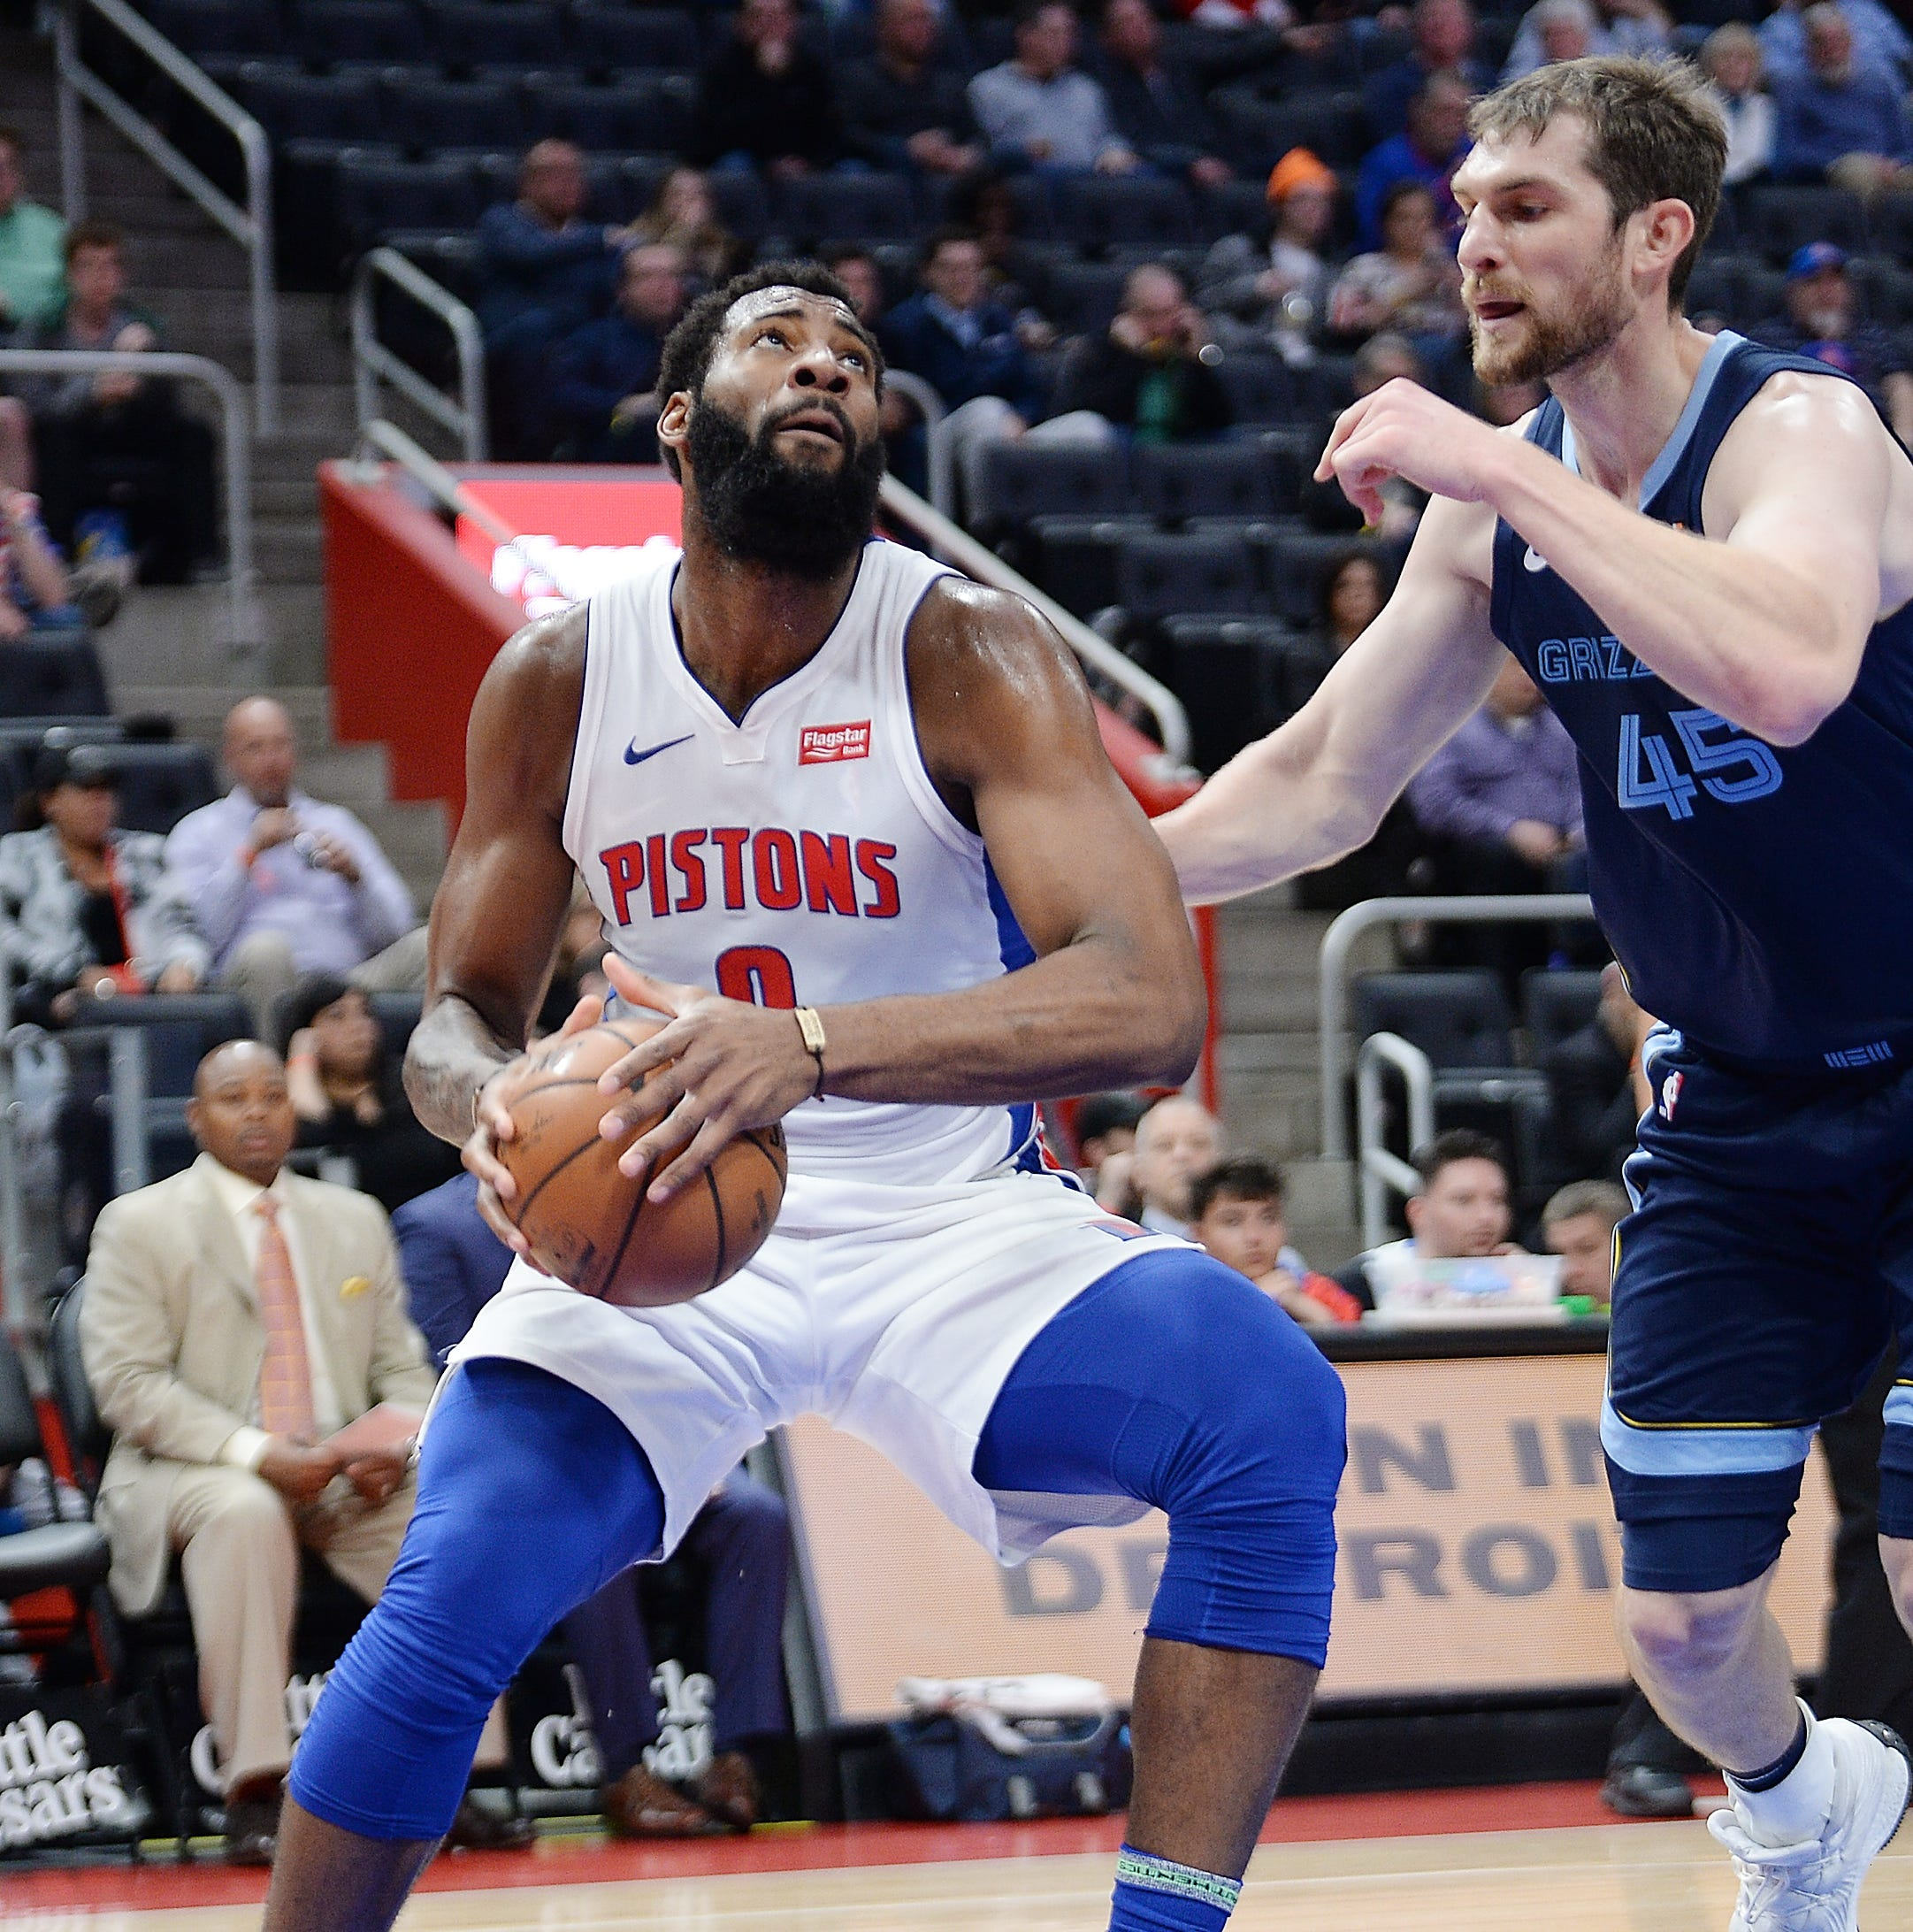 'We knew what was at stake': Pistons save playoff hopes with furious 4th-quarter comeback